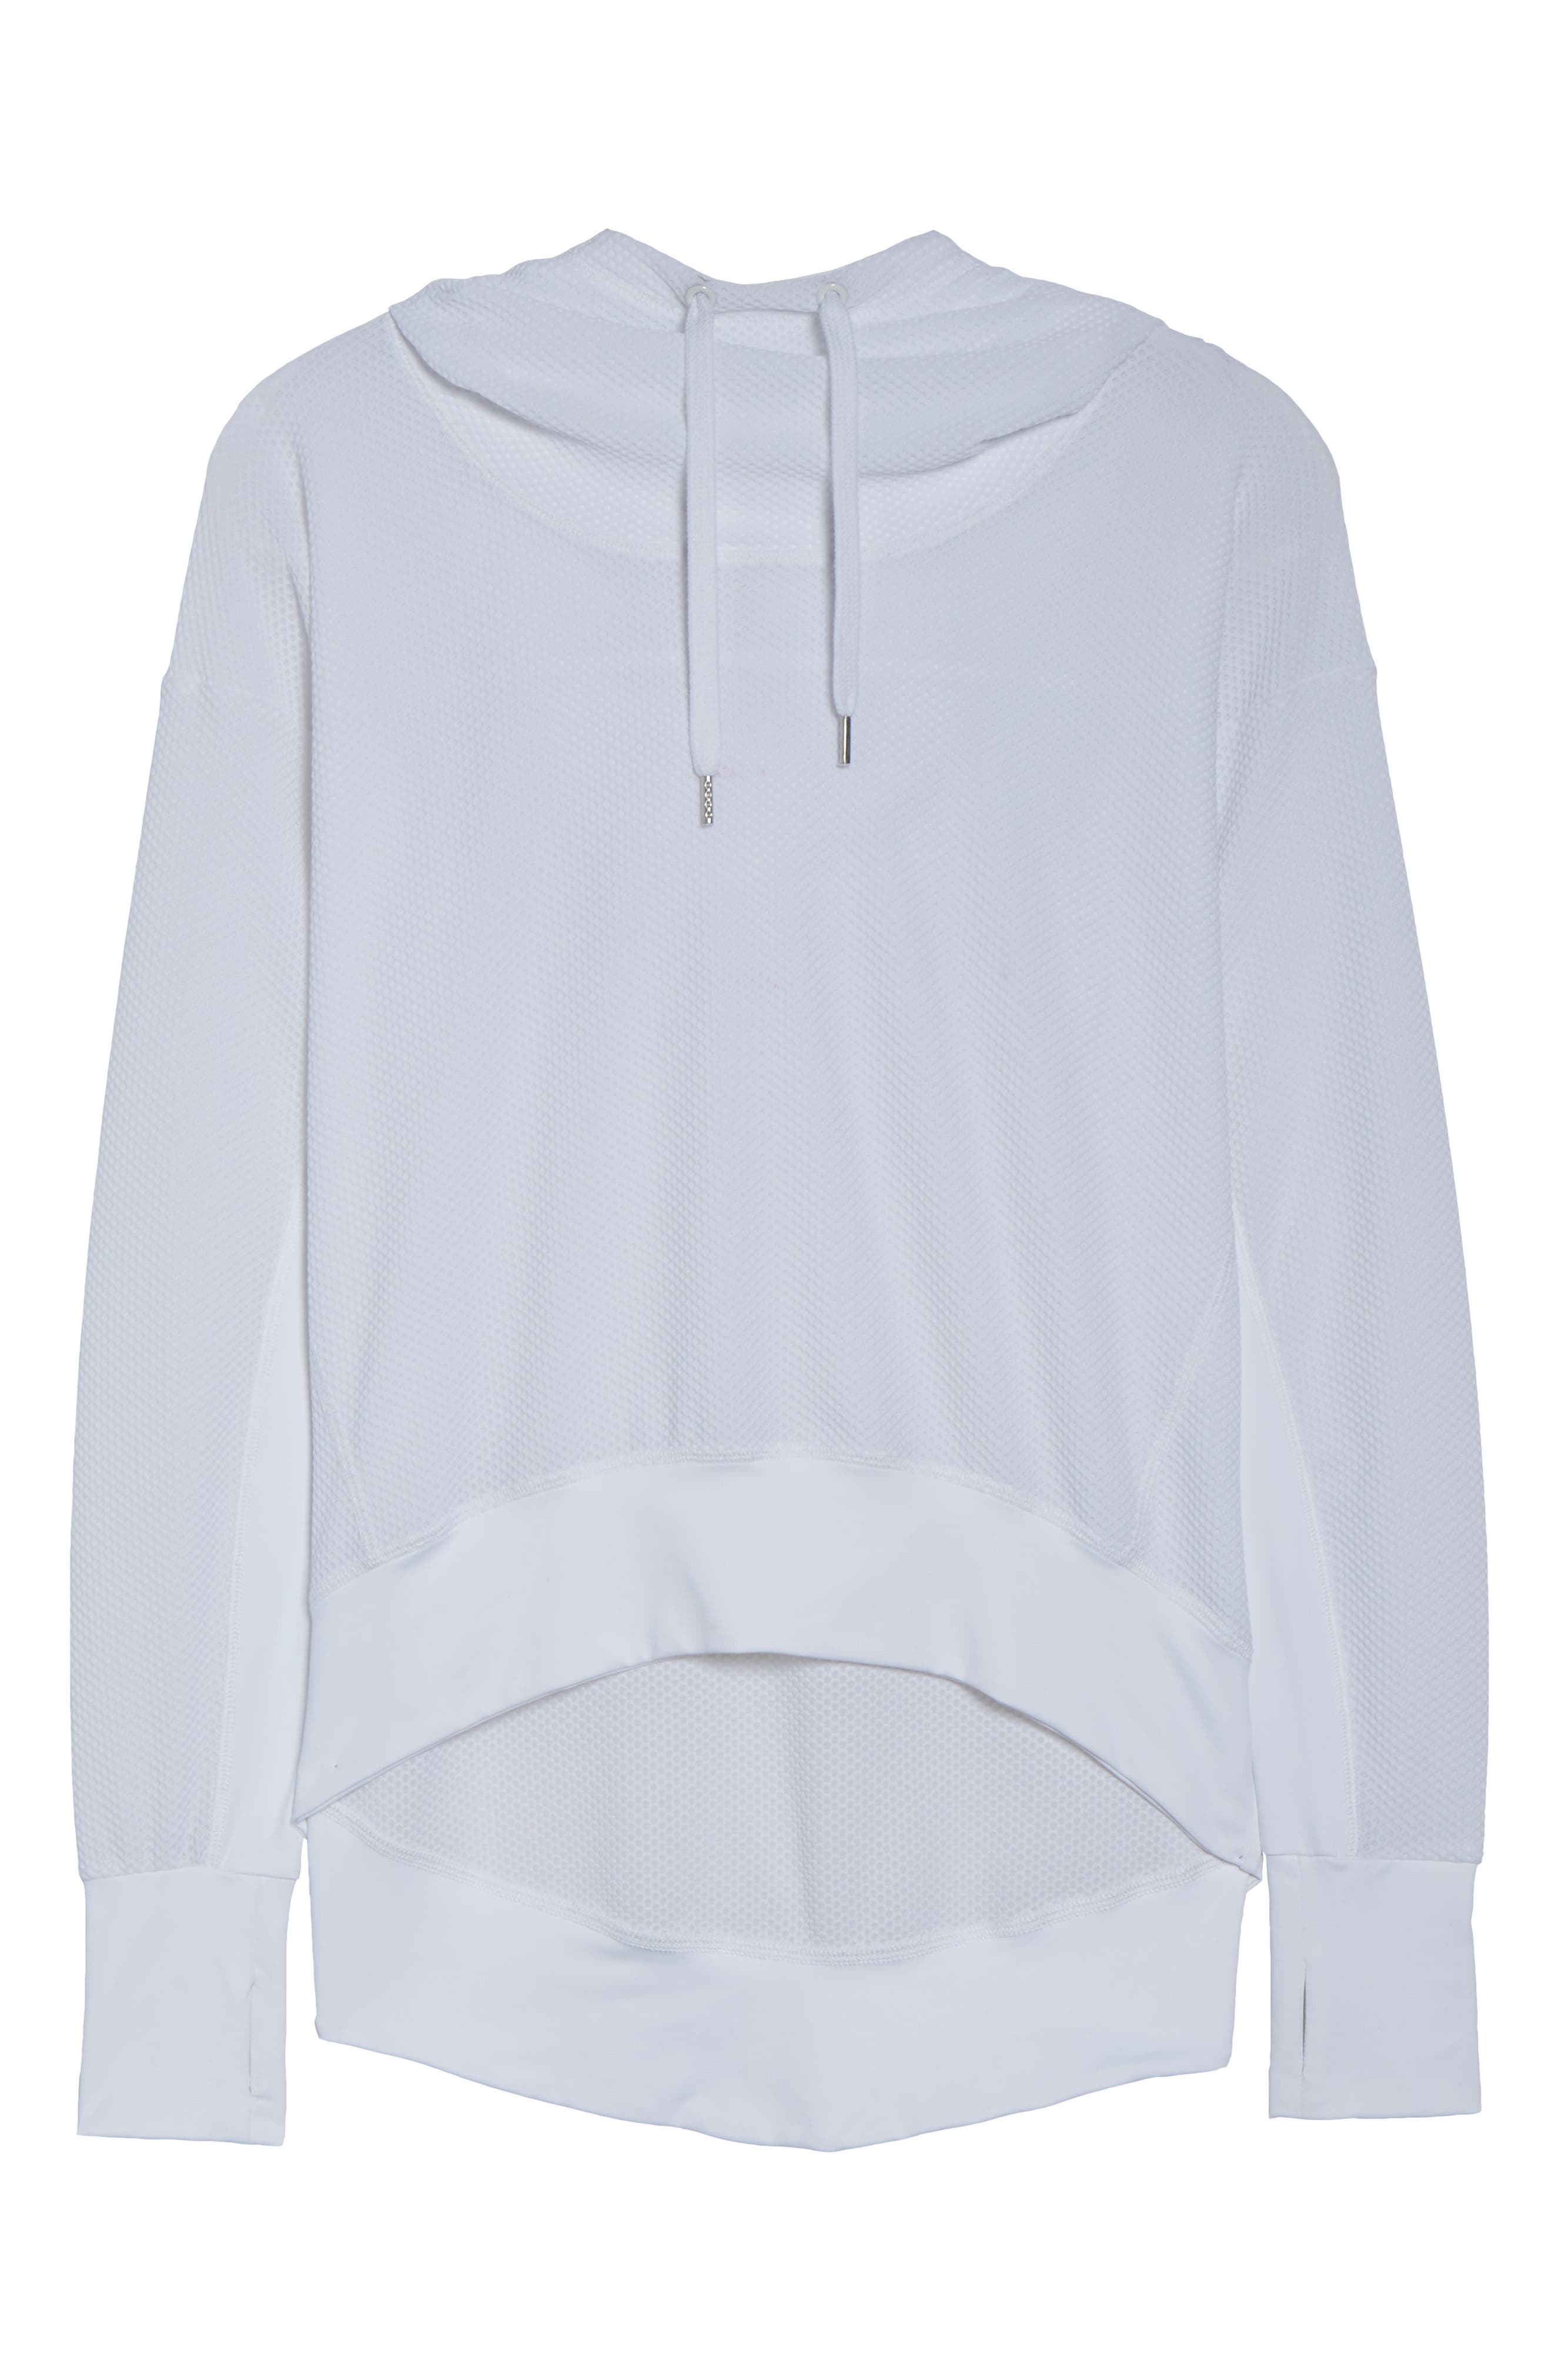 BoomBoom Athletica Bubble Mesh Hoodie,                             Alternate thumbnail 7, color,                             White